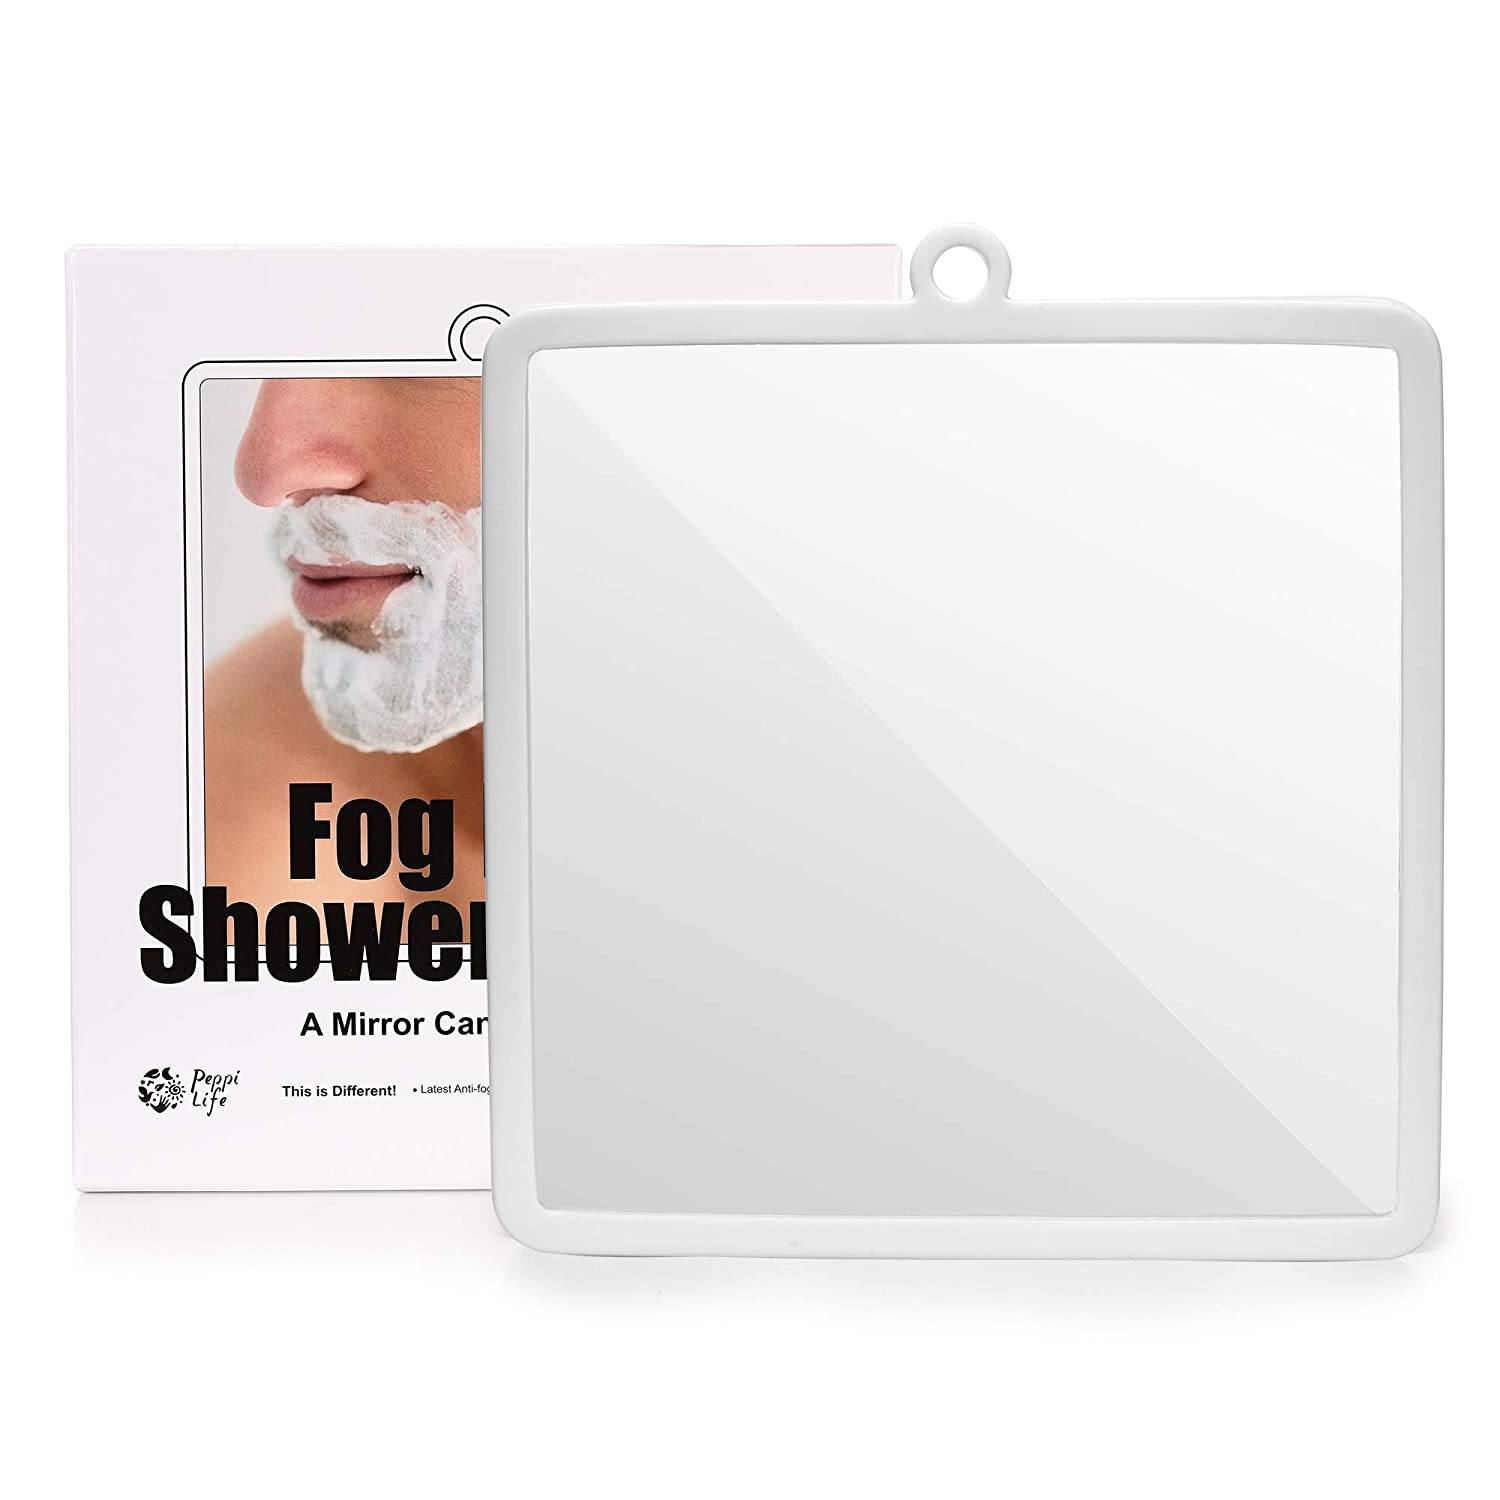 Multi-Colors Option orange Fogless Shower Mirror with Protective Silicone Sheath for Shaving and Make-up,New Nano Fogless Technology That Real Works